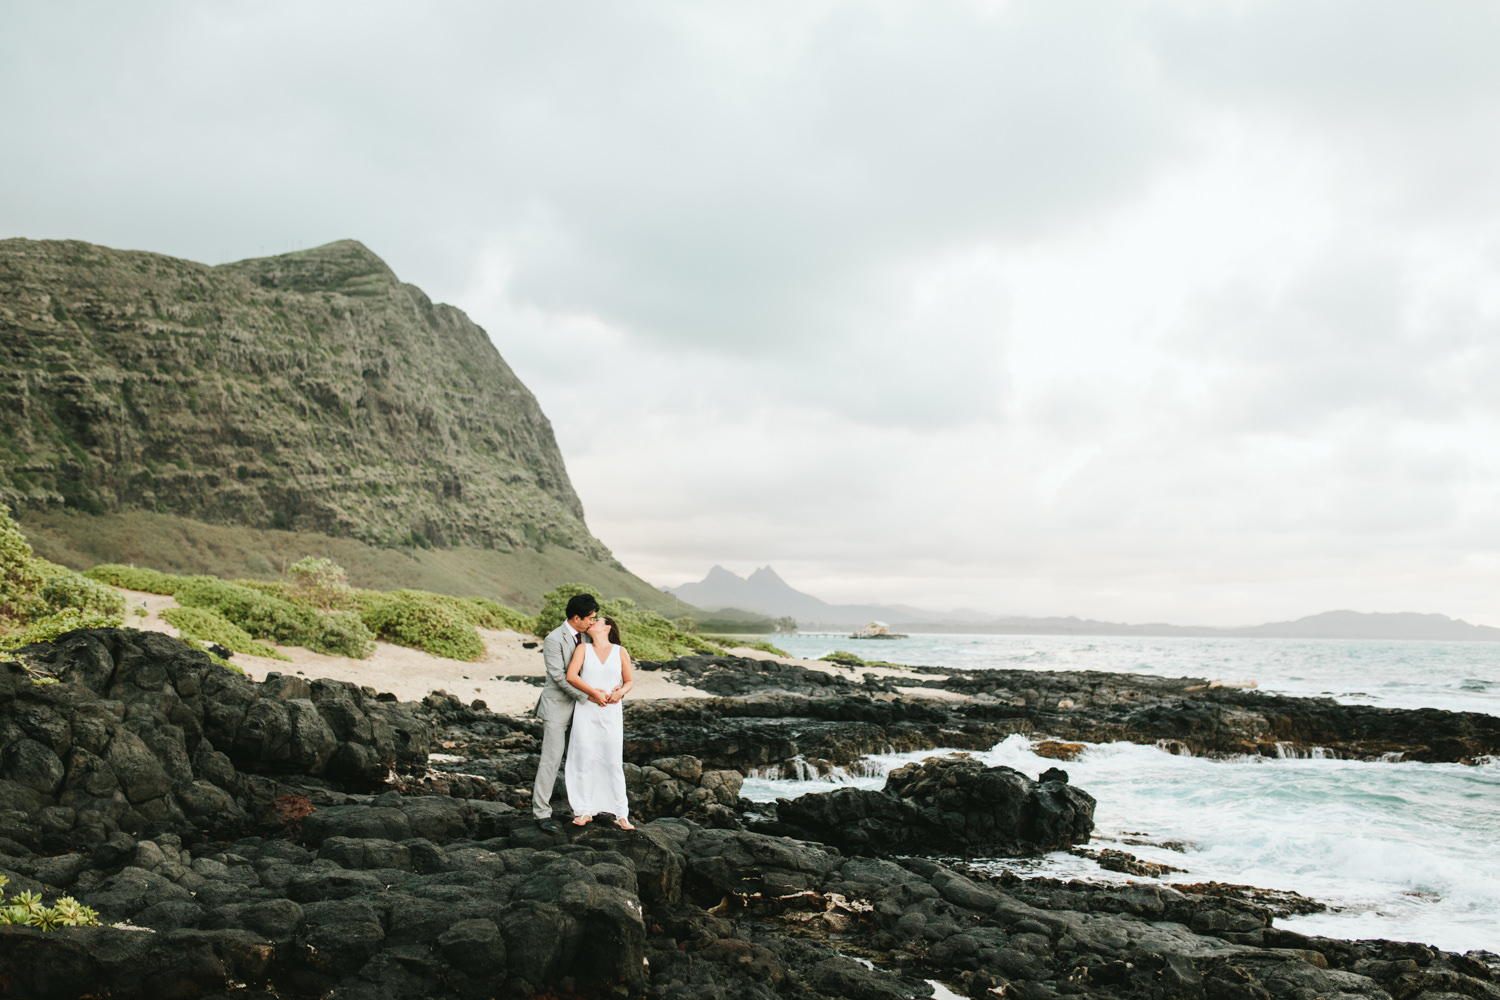 hawaiiweddingphotographer-3061.jpg